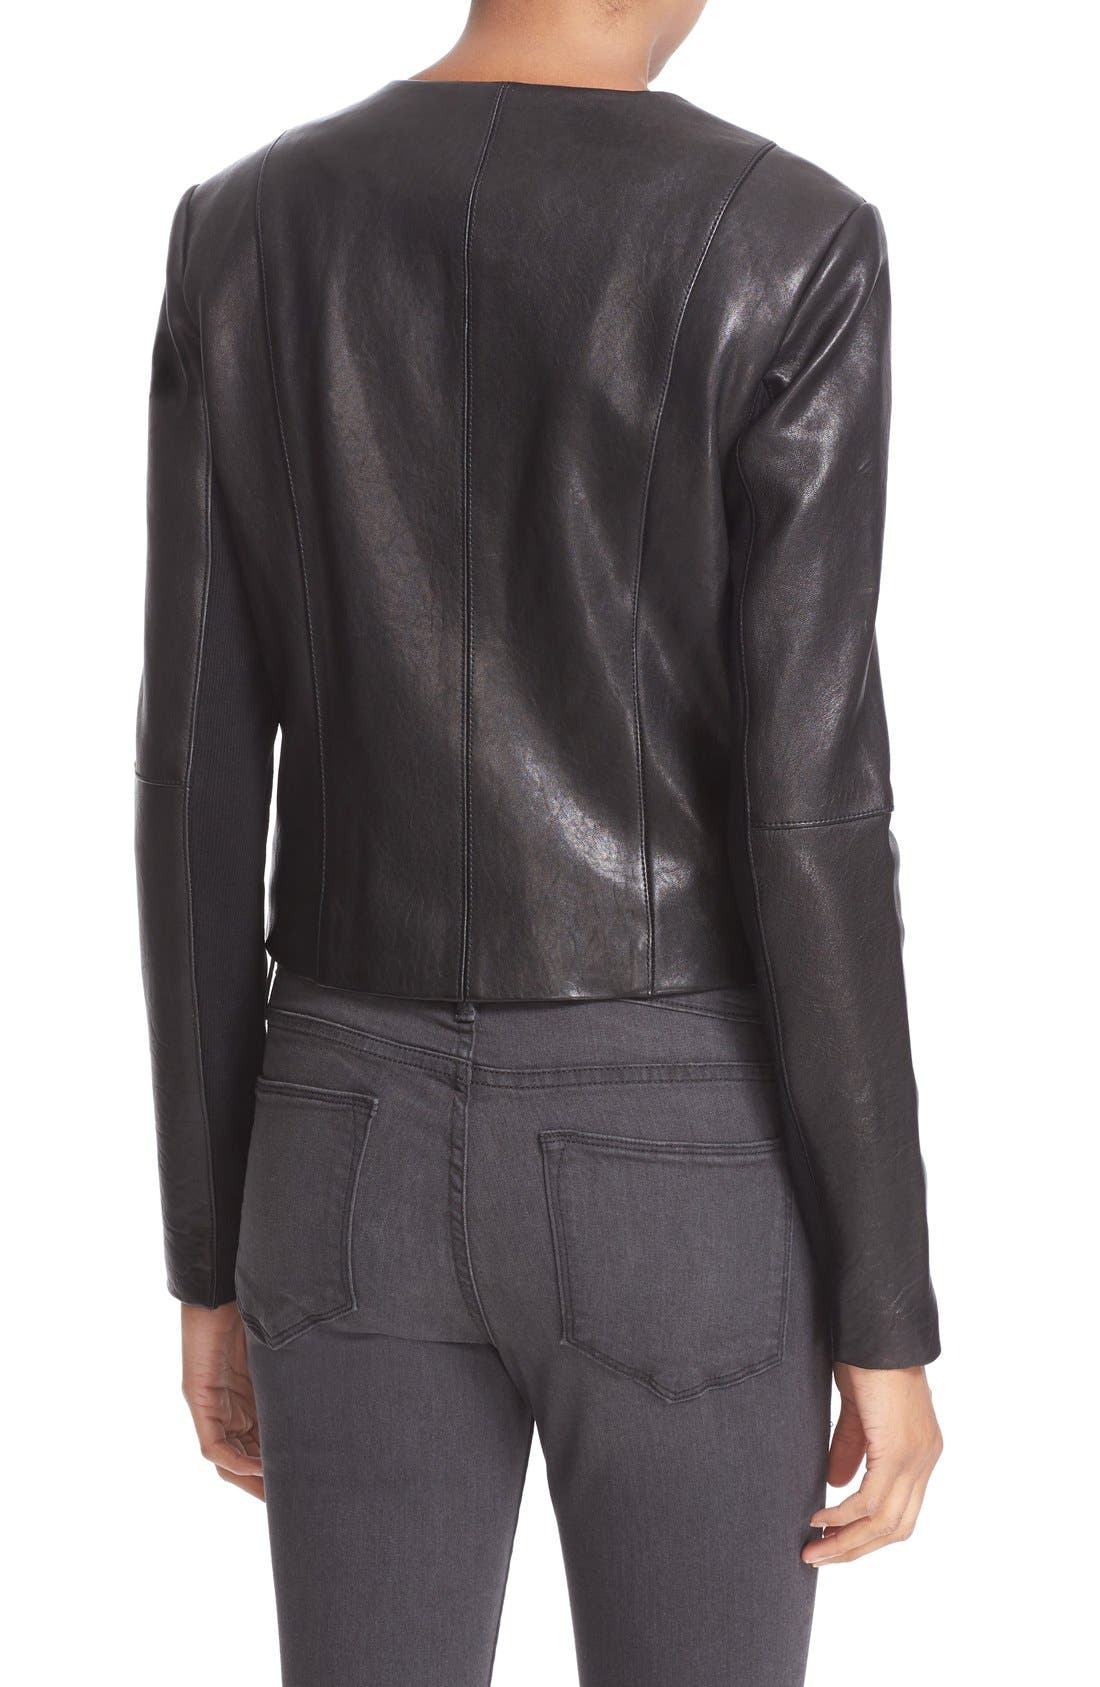 'Dali' Lambskin Leather Jacket,                             Alternate thumbnail 2, color,                             Black